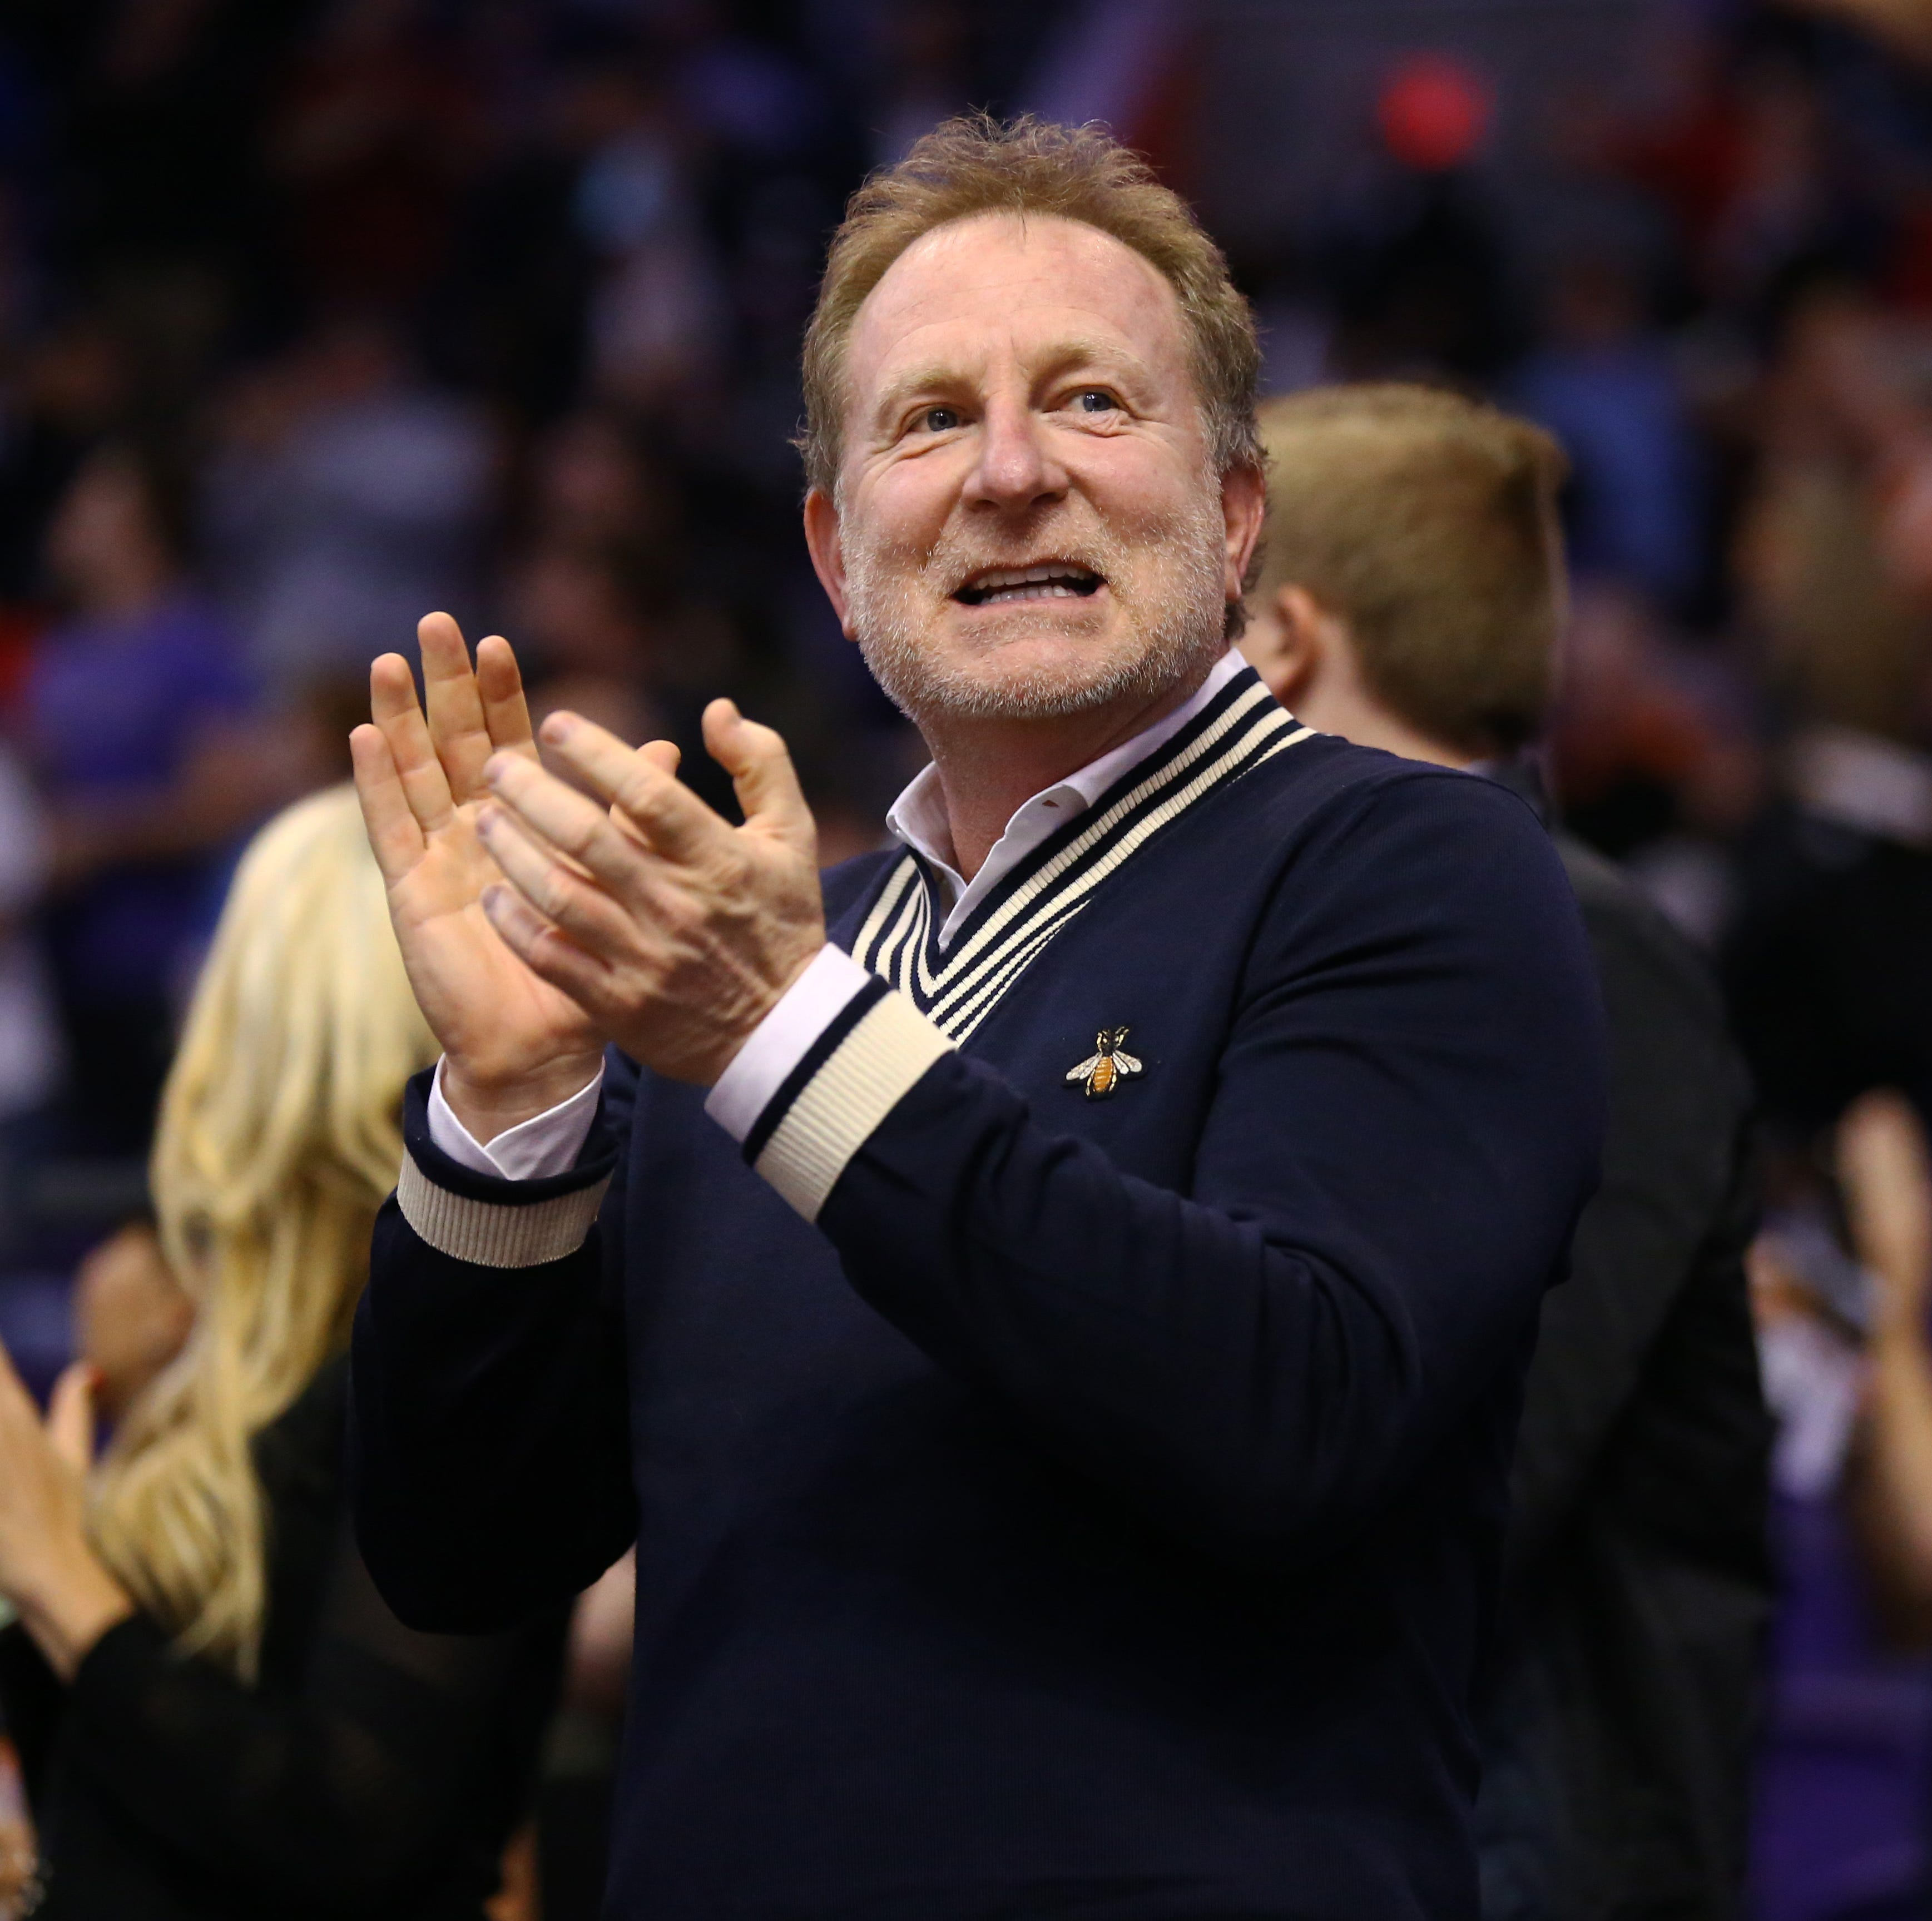 Petition: Force Robert Sarver to sell the Phoenix Suns